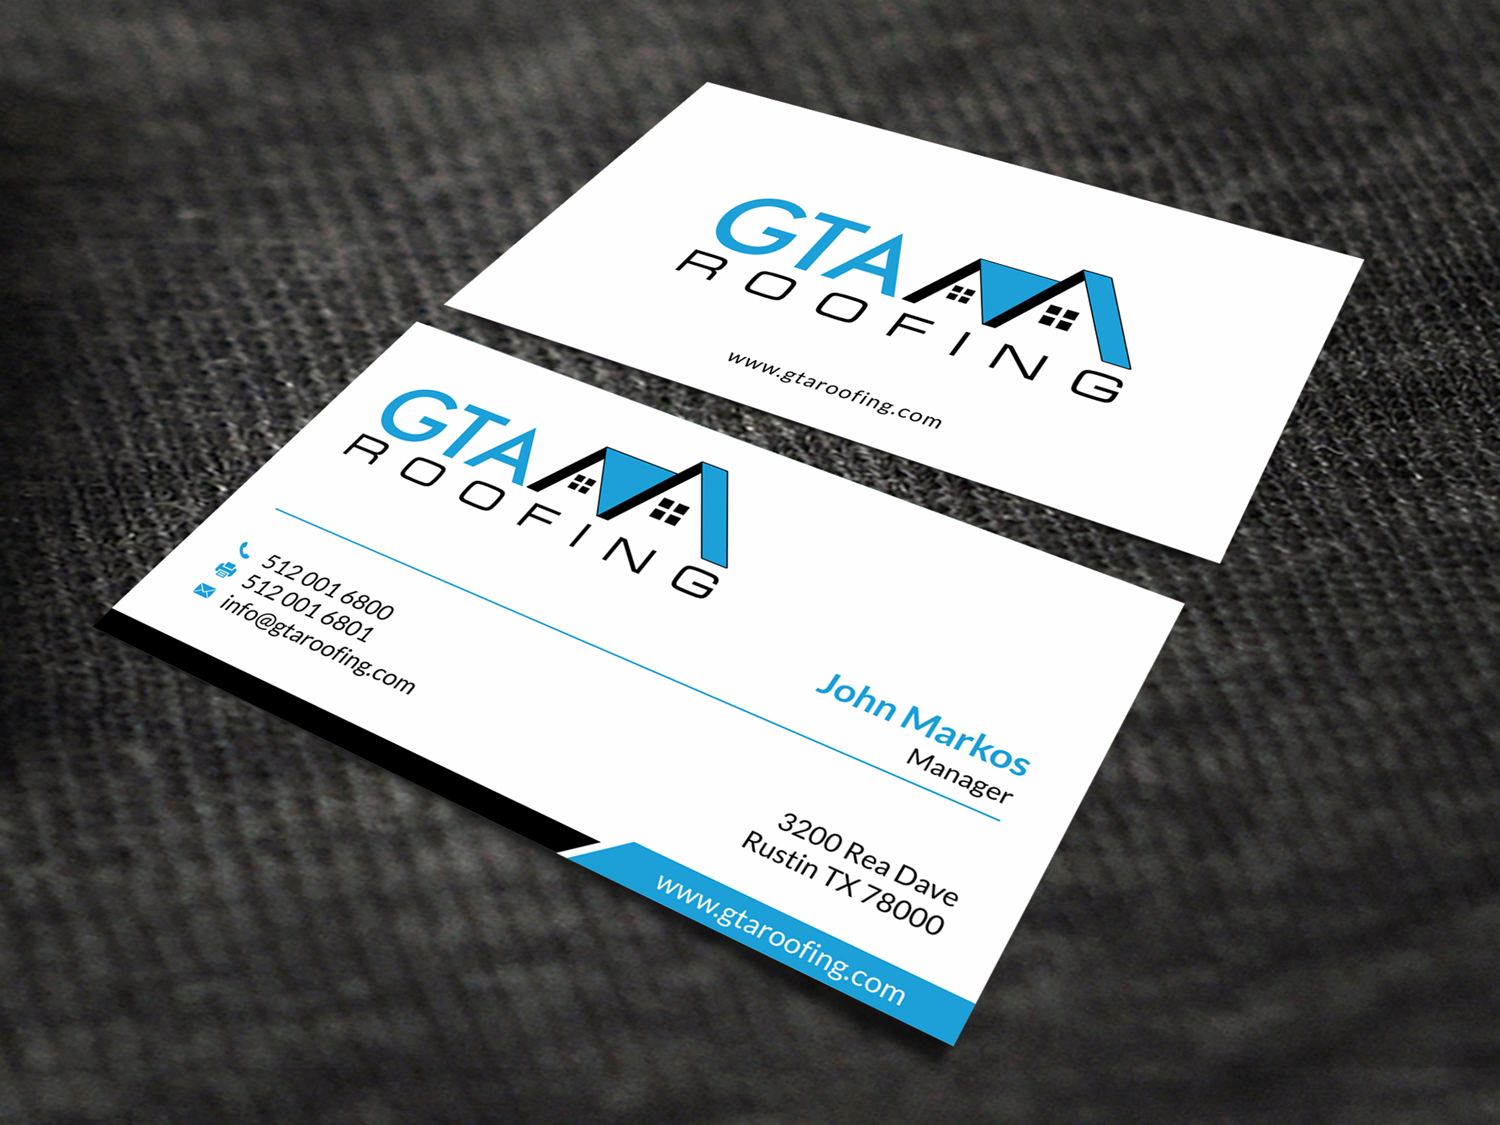 Modern professional roofing business card design for gta roofing business card design by skydesign for gta roofing design 13991021 reheart Images